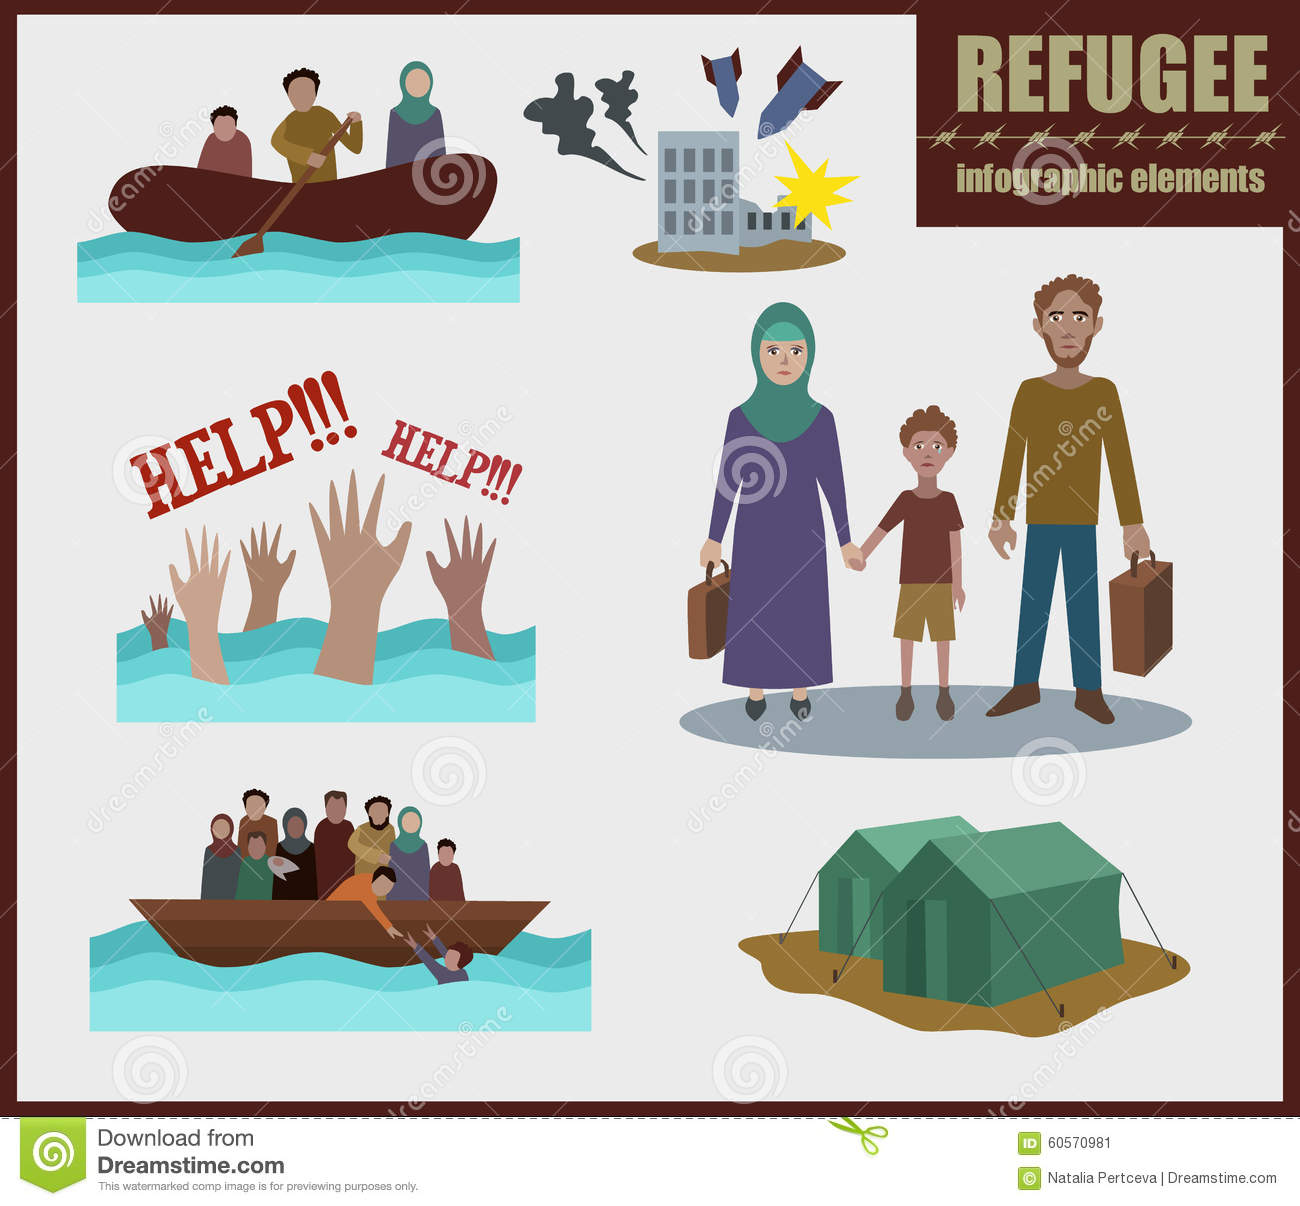 Character Design Illustration : Refugee vector infographic elements stock image